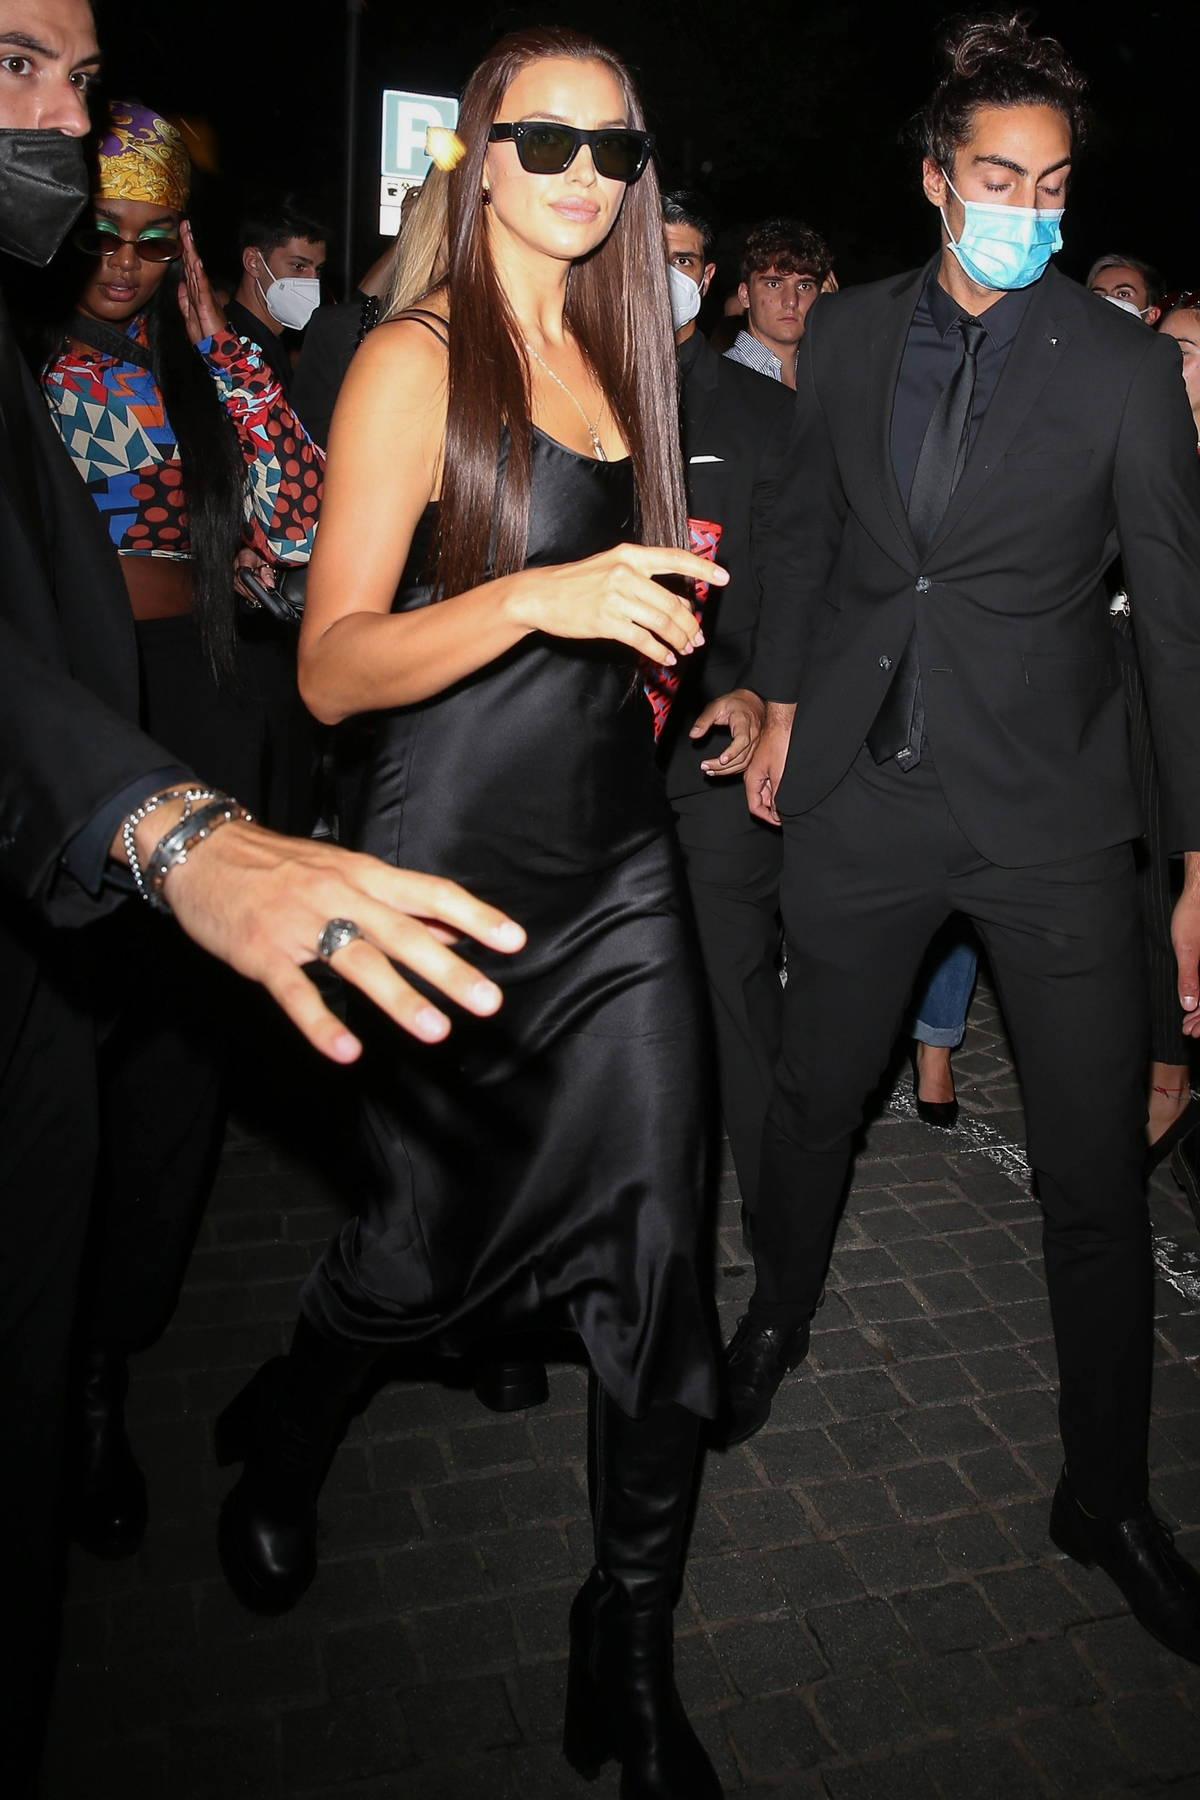 Irina Shayk greets fans as she leaves the Versace SS22 Show with Stella Maxwell during Milan Fashion Week in Milan, Italy